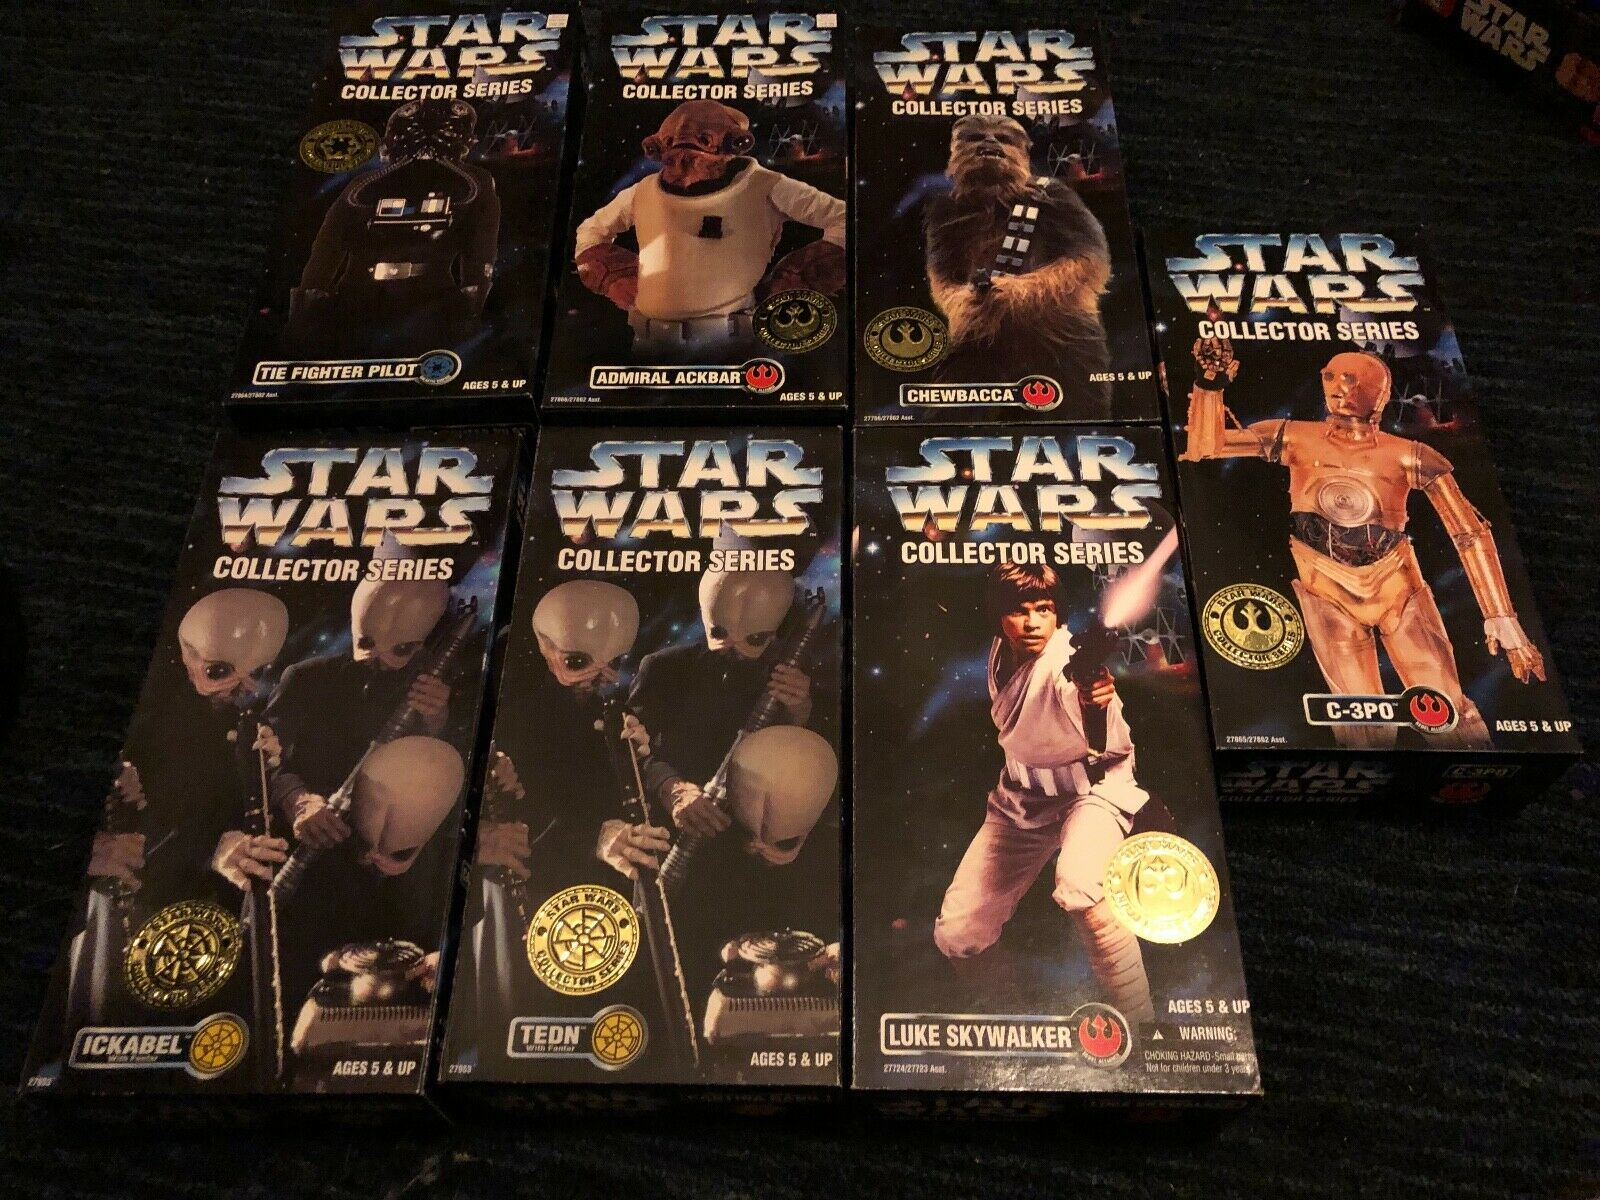 LOT OF 7 STAR WARS COLLECTOR SERIES 1996 ACTION FIGURES, CHEWBACCA, C-3PO, NEW